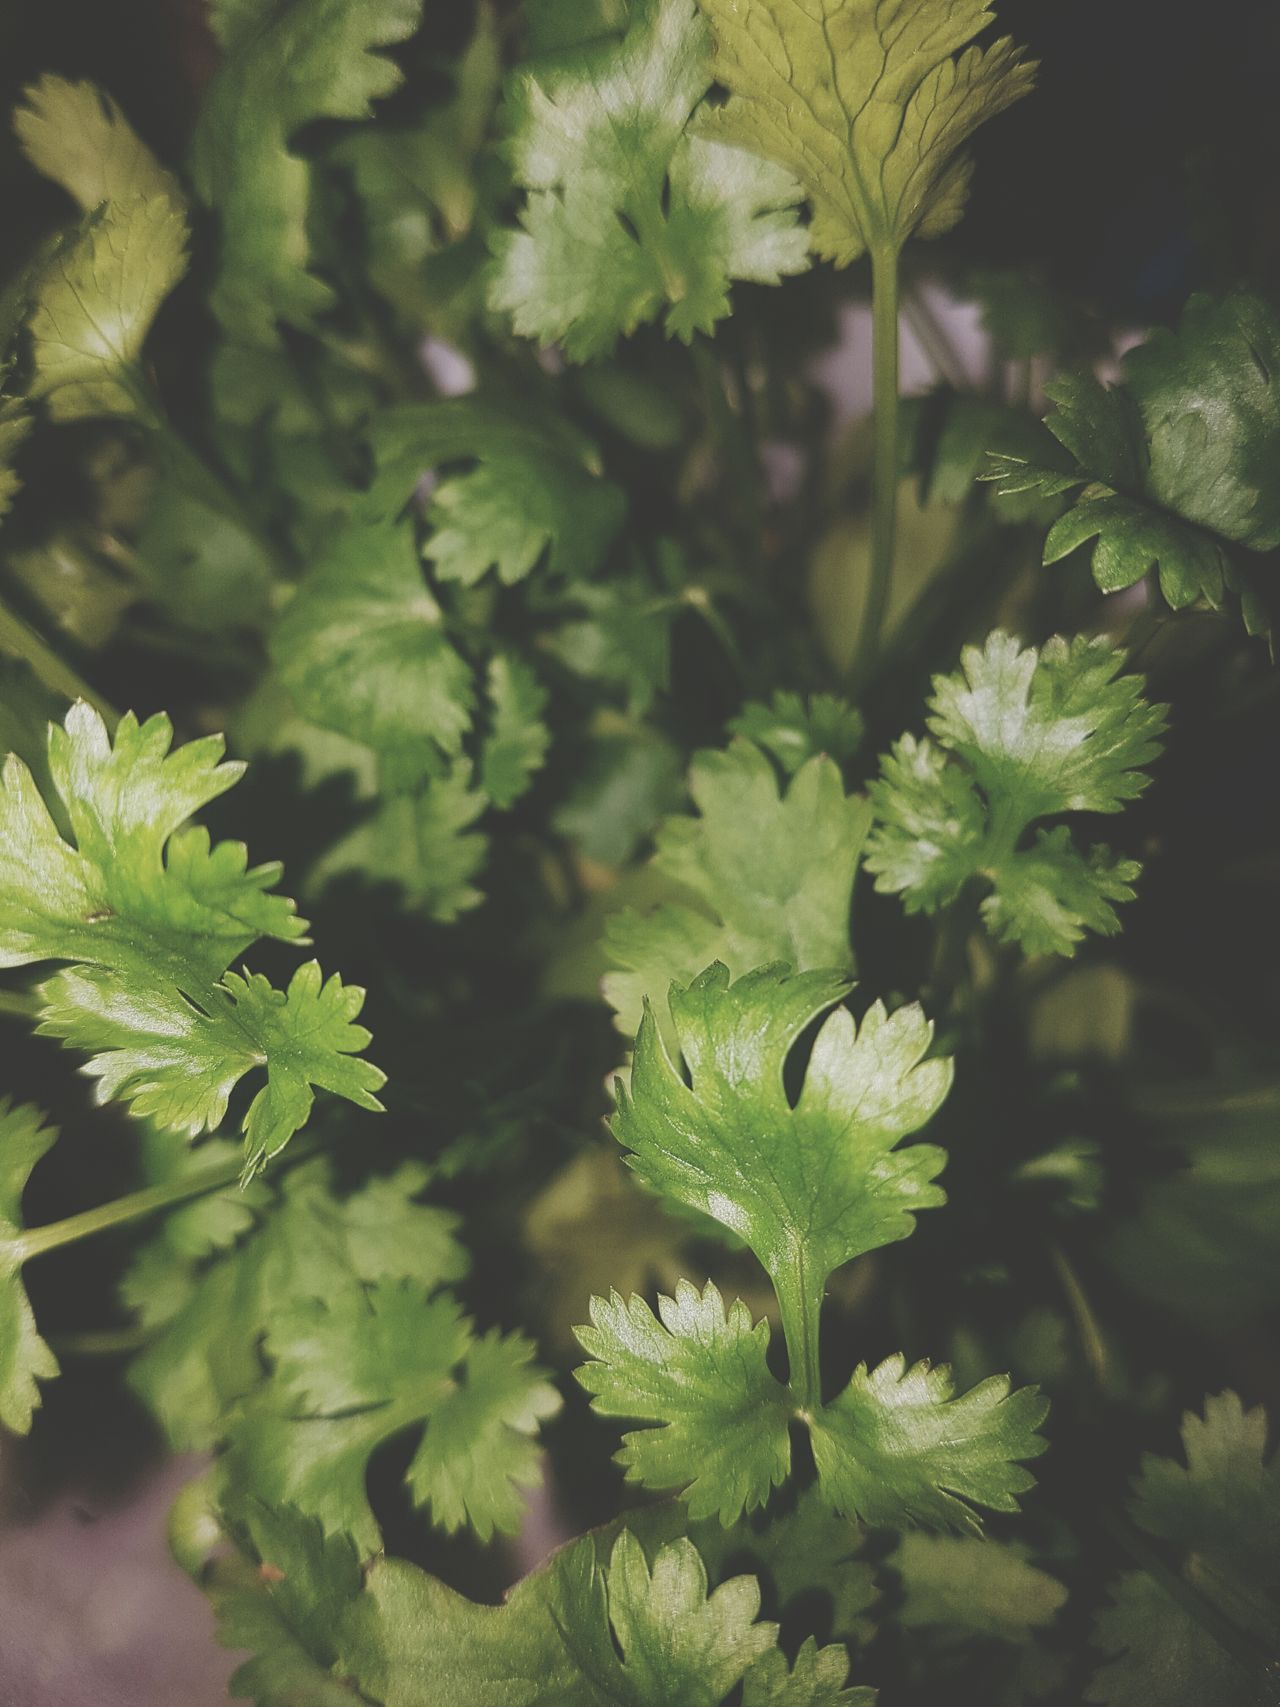 Beautifully Organized Growth Nature Plant Leaf Green Color Beauty In Nature Close-up No People Flower Outdoors Day Freshness Food Coriander Freshness Plant Nature Focus On Foreground Cori